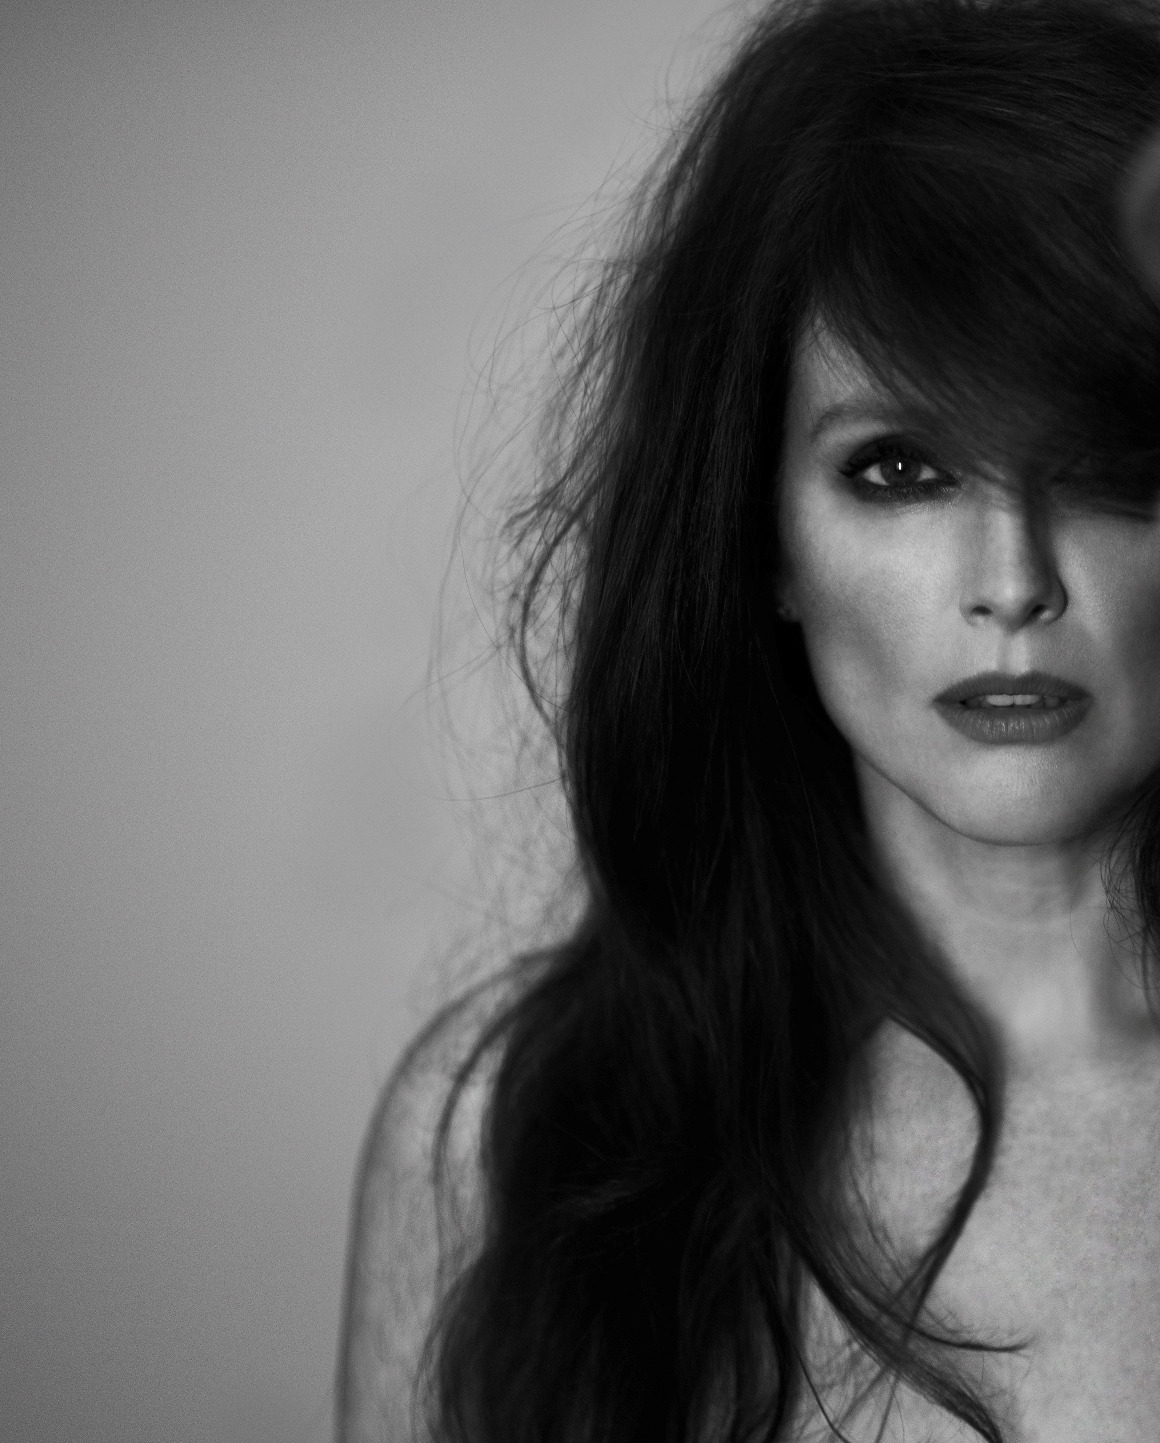 Julianne Moore - Rika #8 by Helena Christensen, Spring/Summer 2013